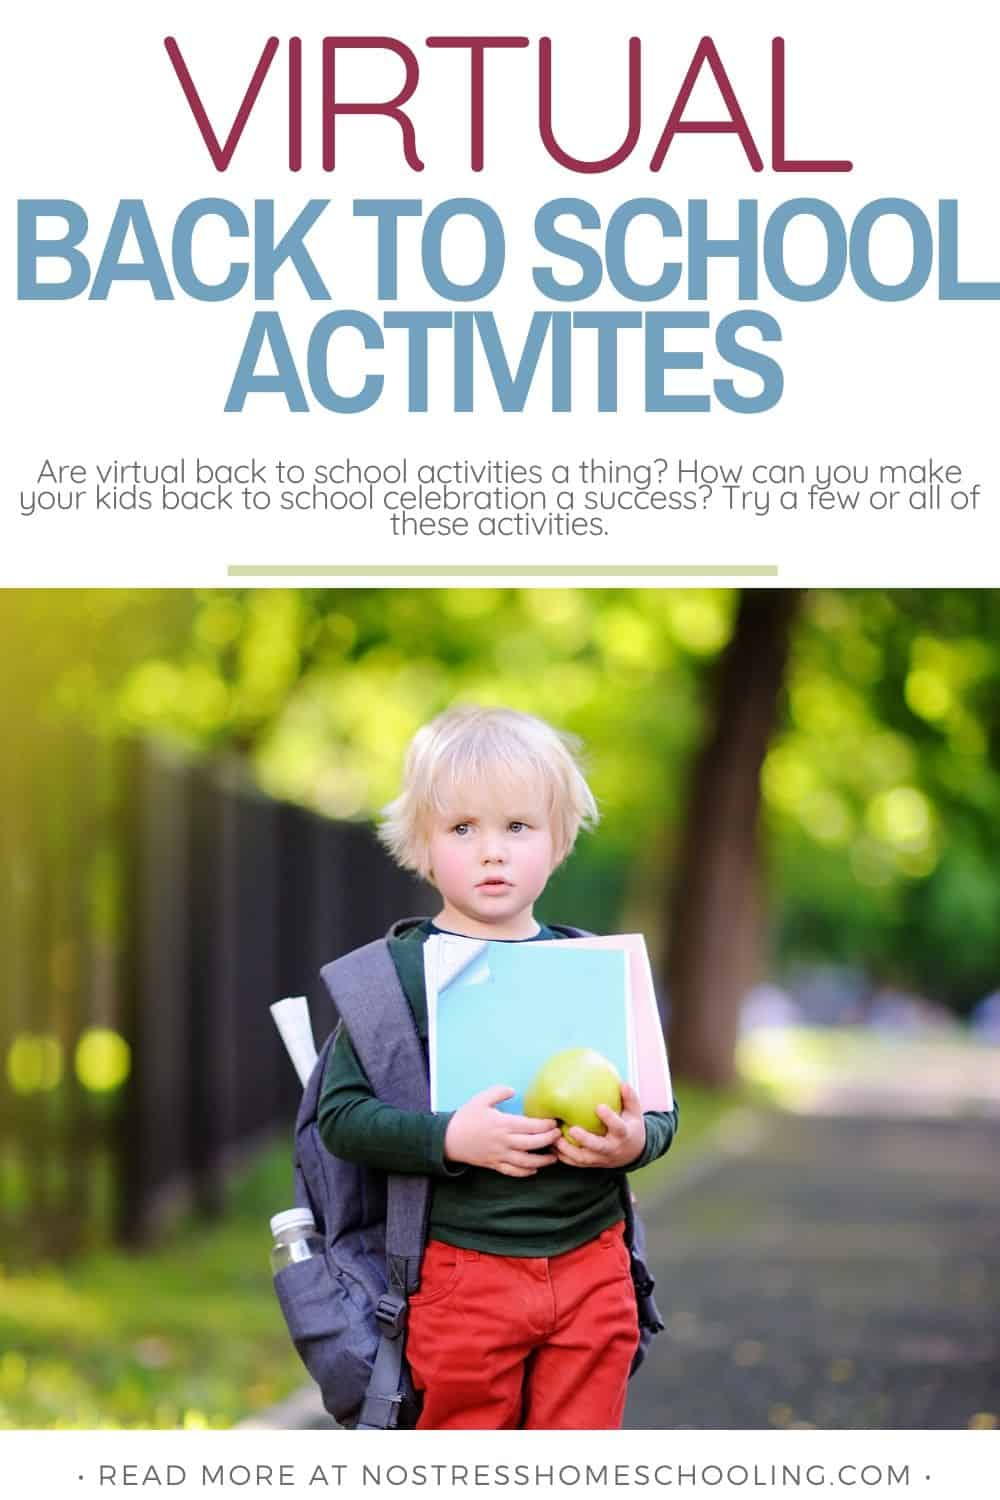 Are virtual back to school activities a thing? How can you make your kids back to school celebration a success? Try a few or all of these activities.